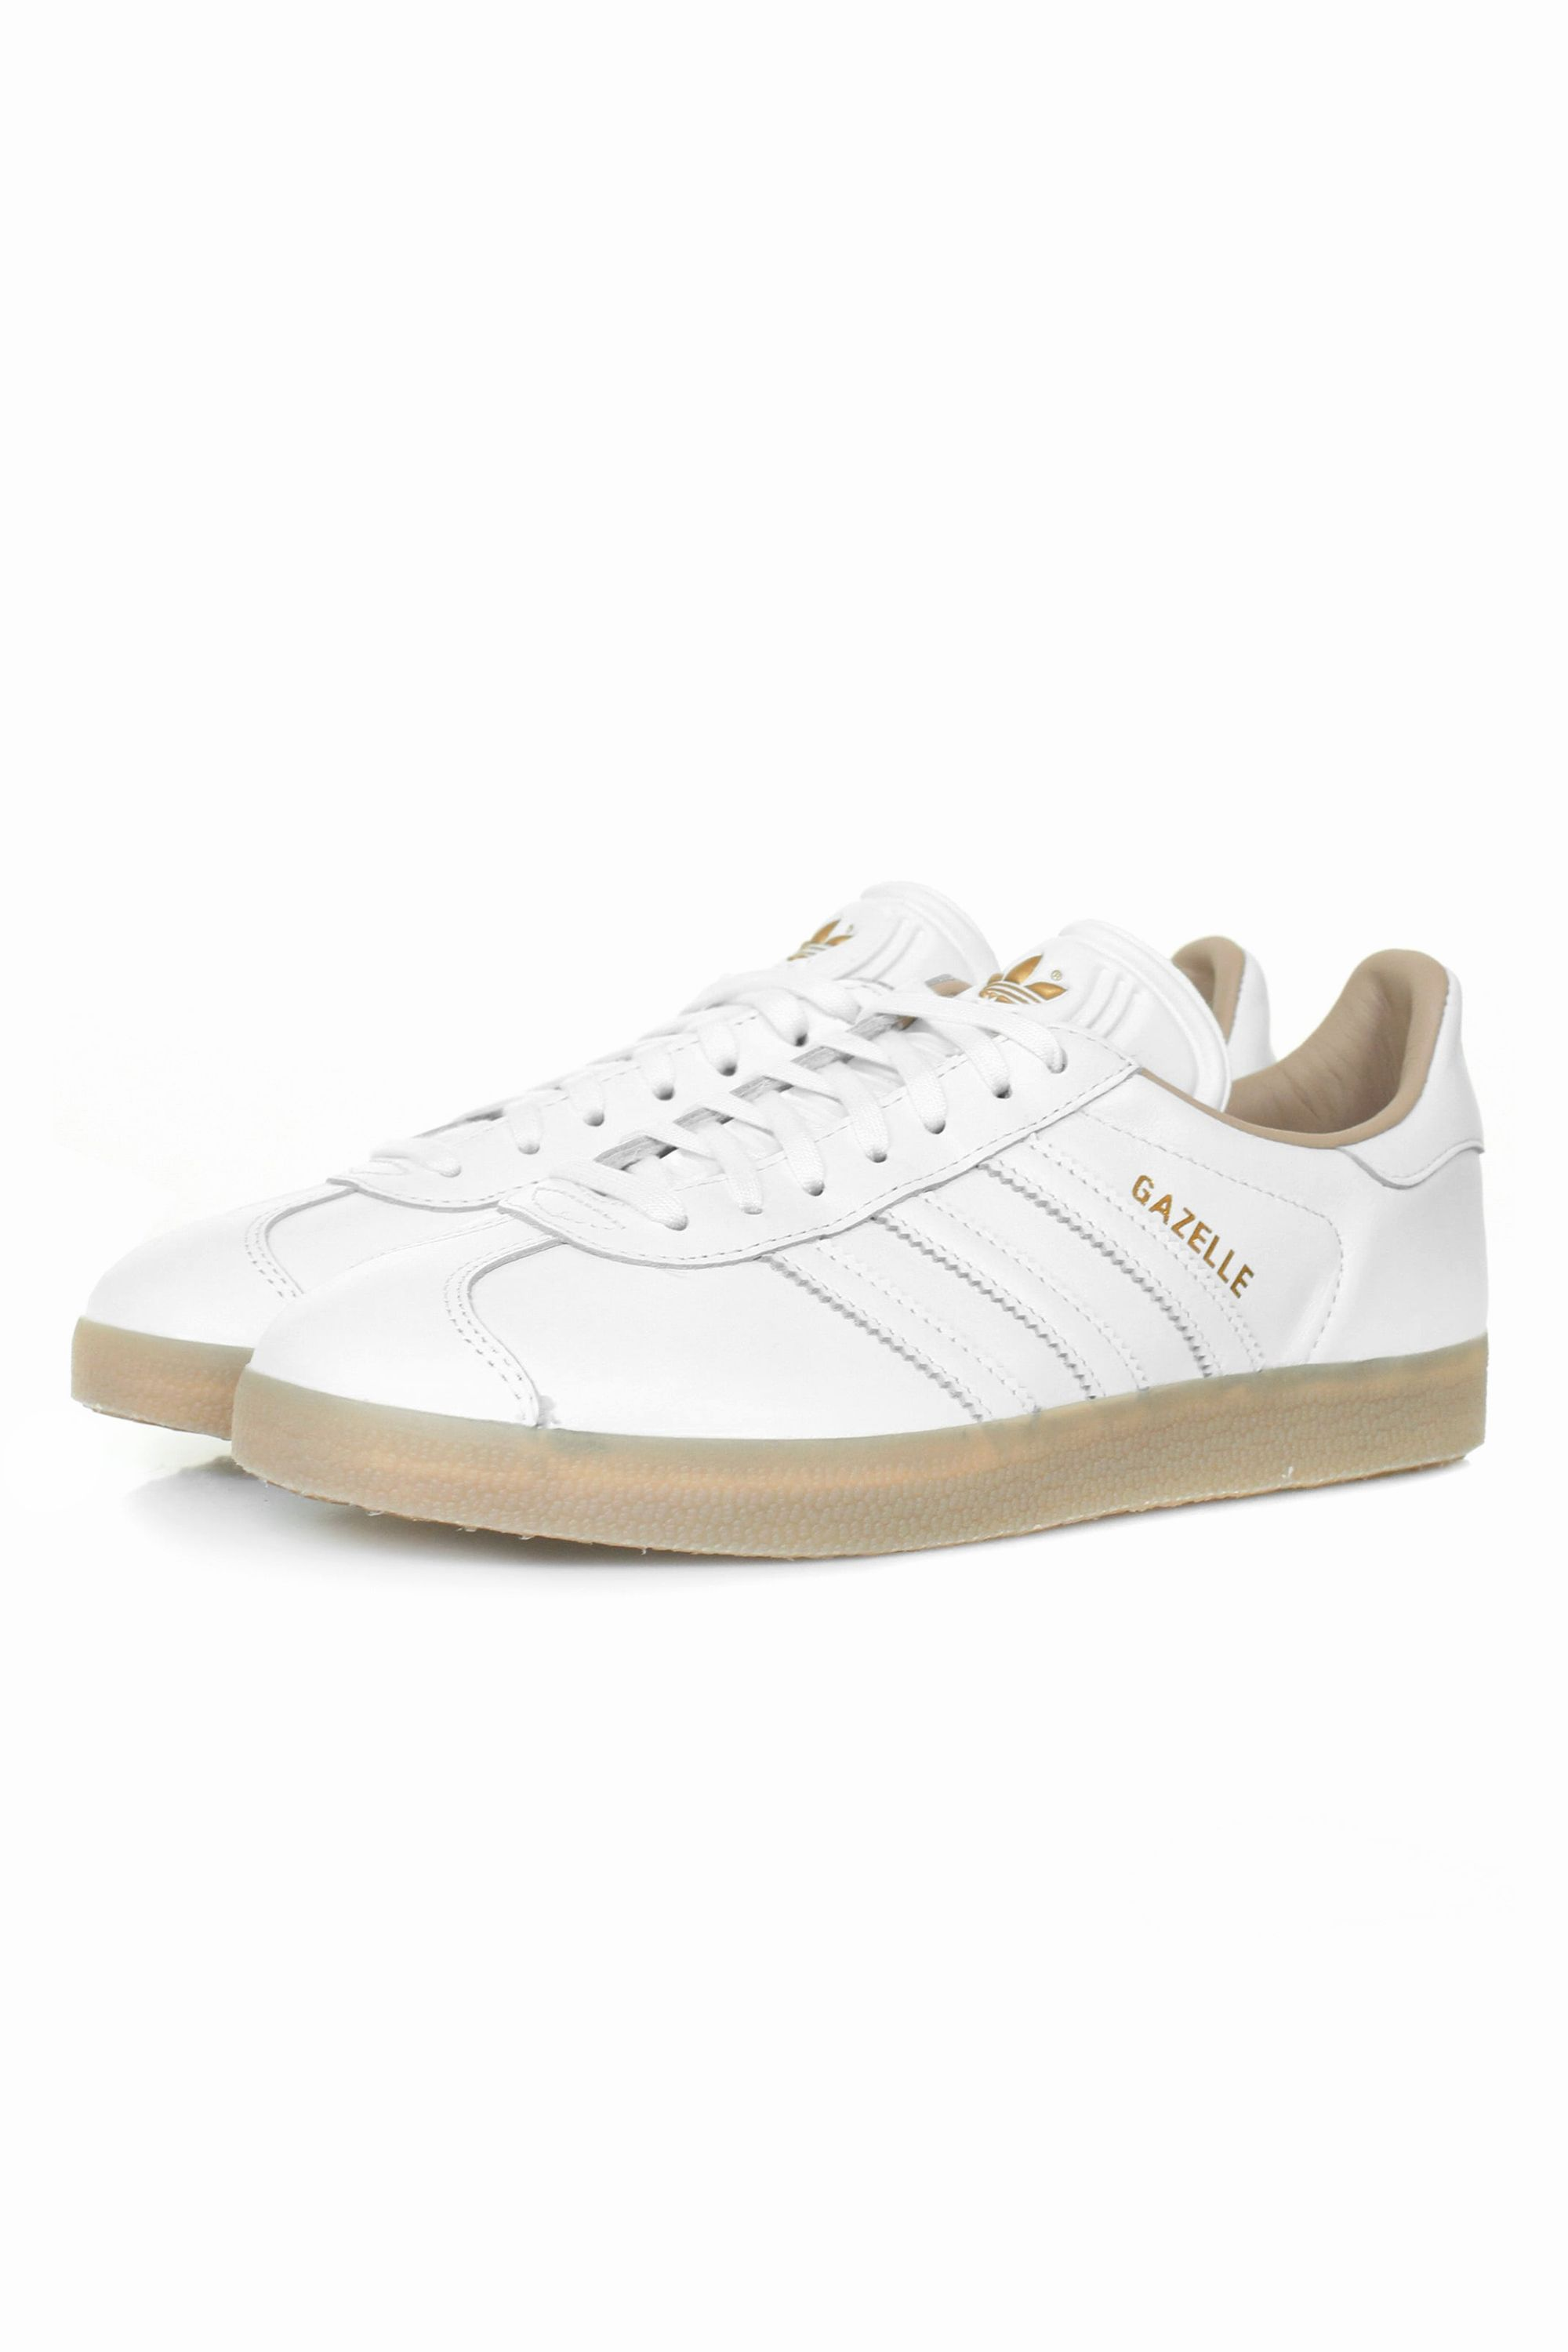 adidas shoes for teenage girls. adidas shoes for teenage girls